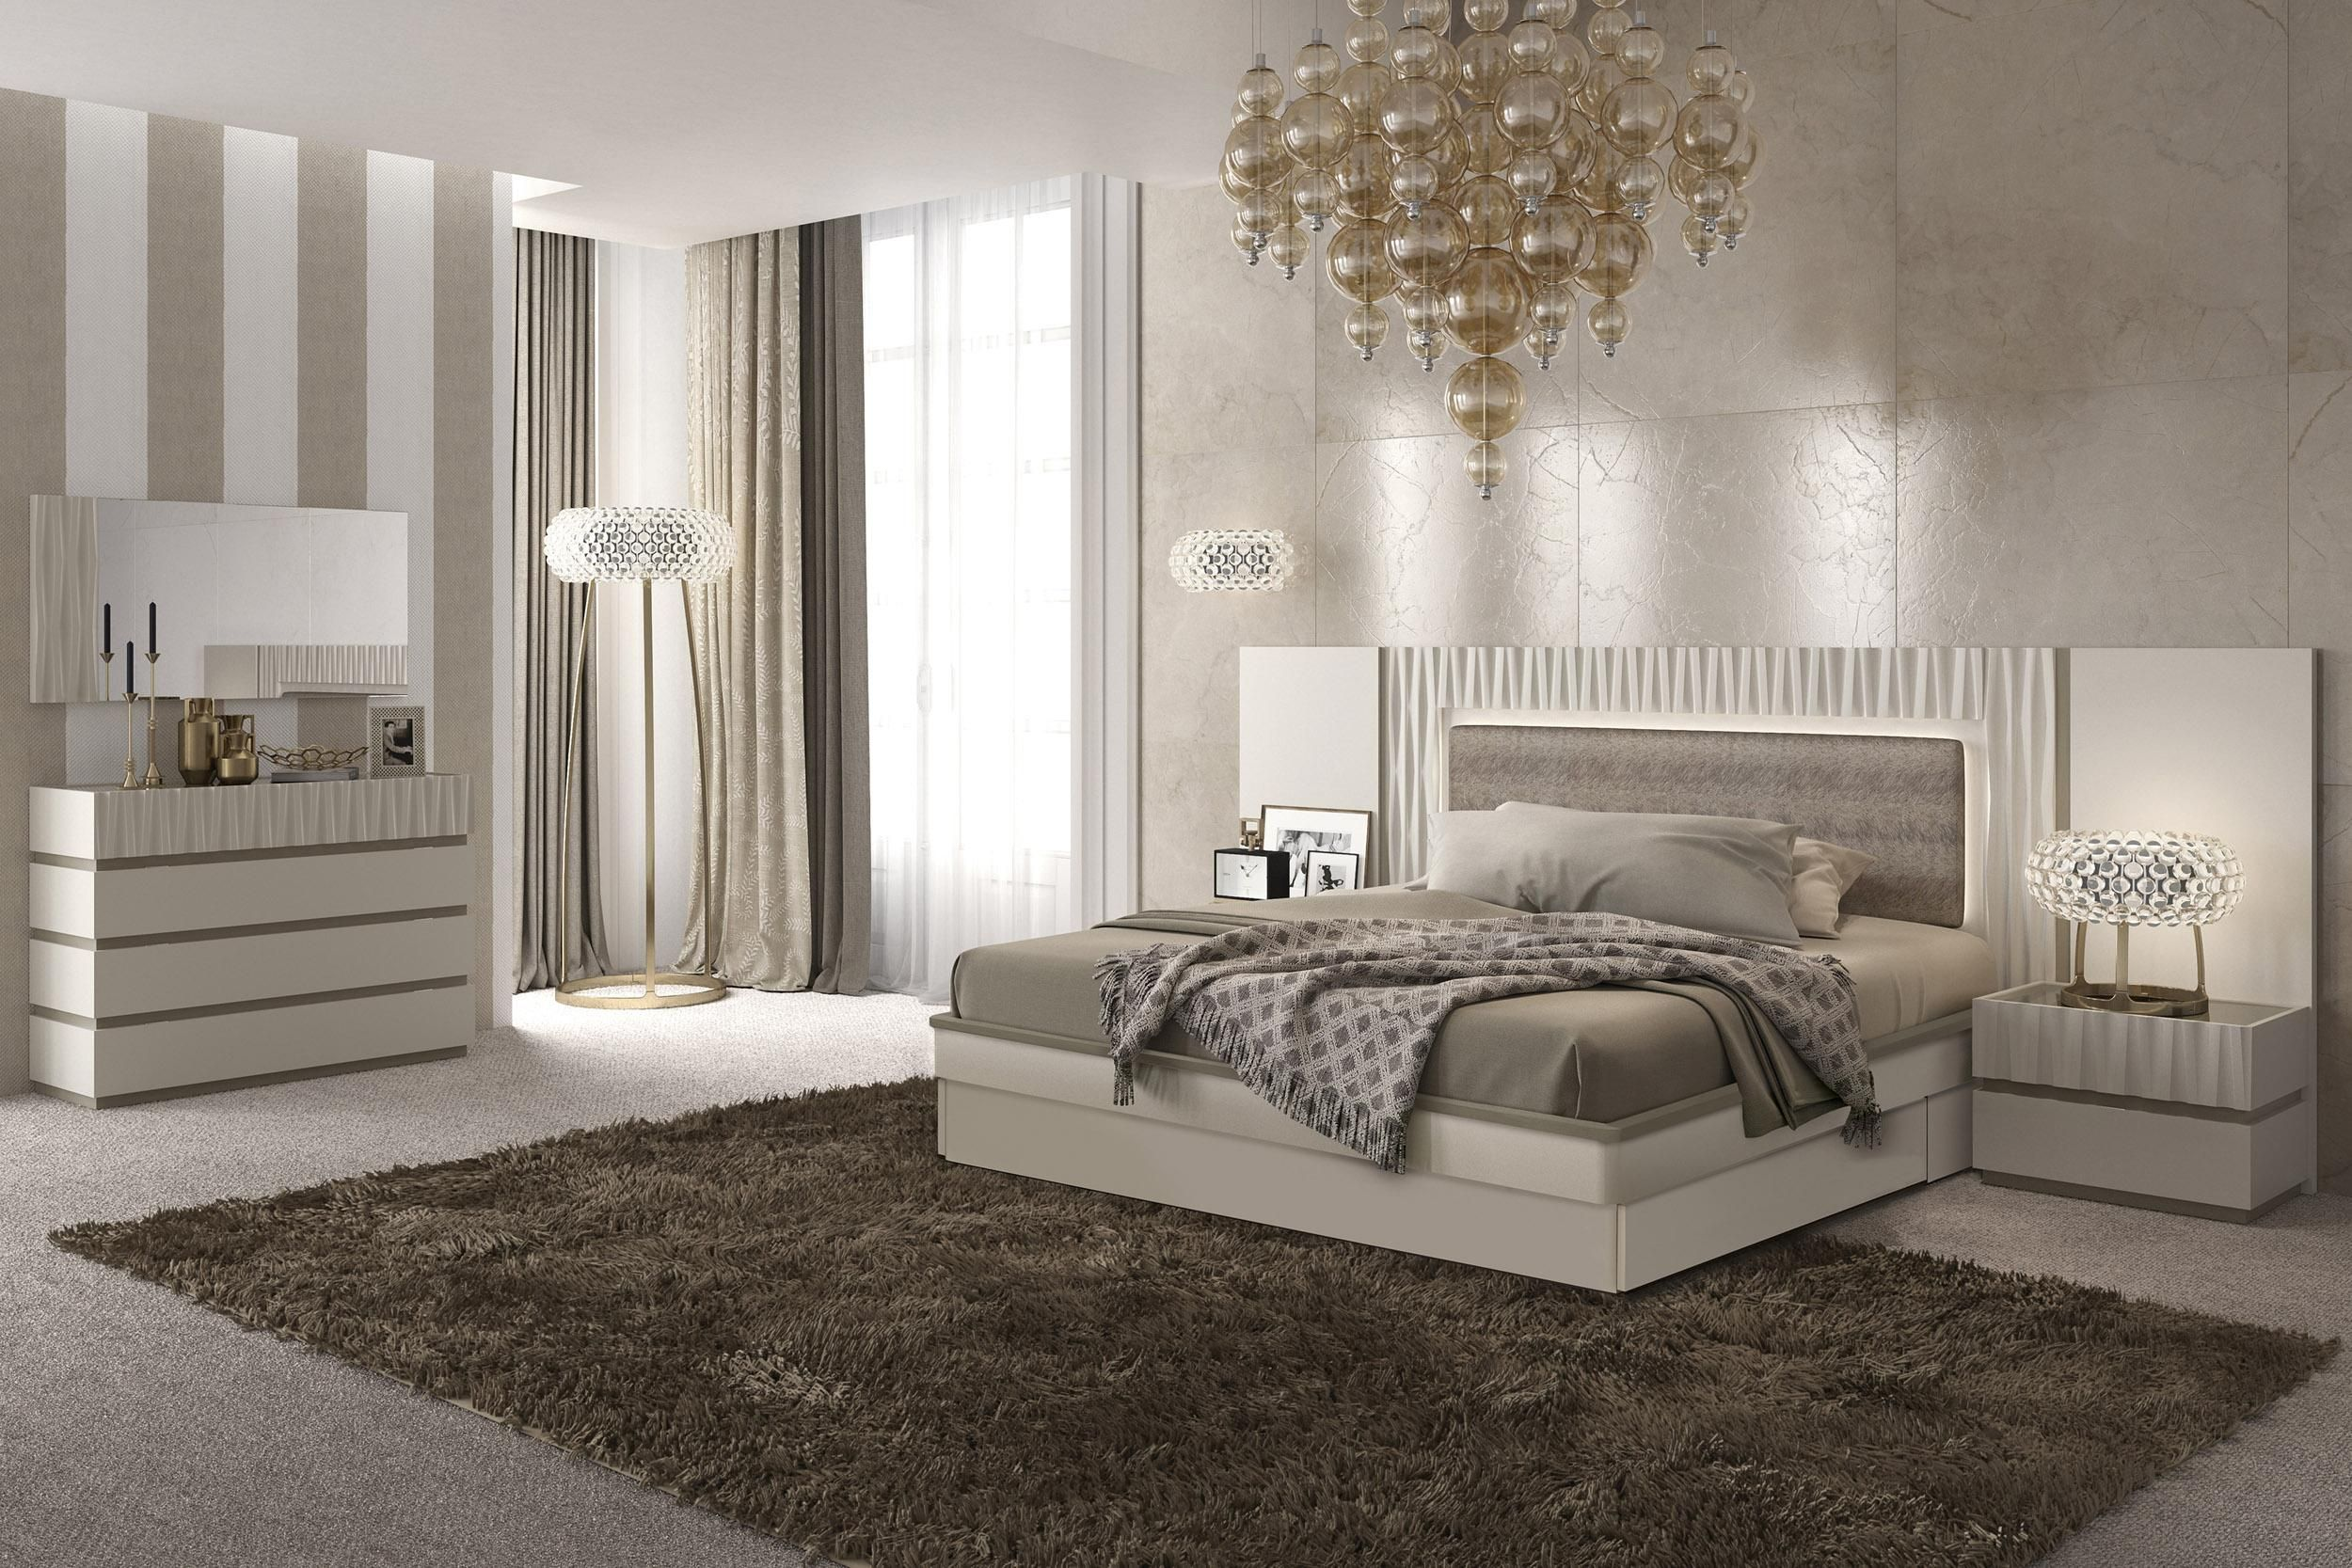 Exclusive Quality Modern Contemporary Bedroom Designs with Light